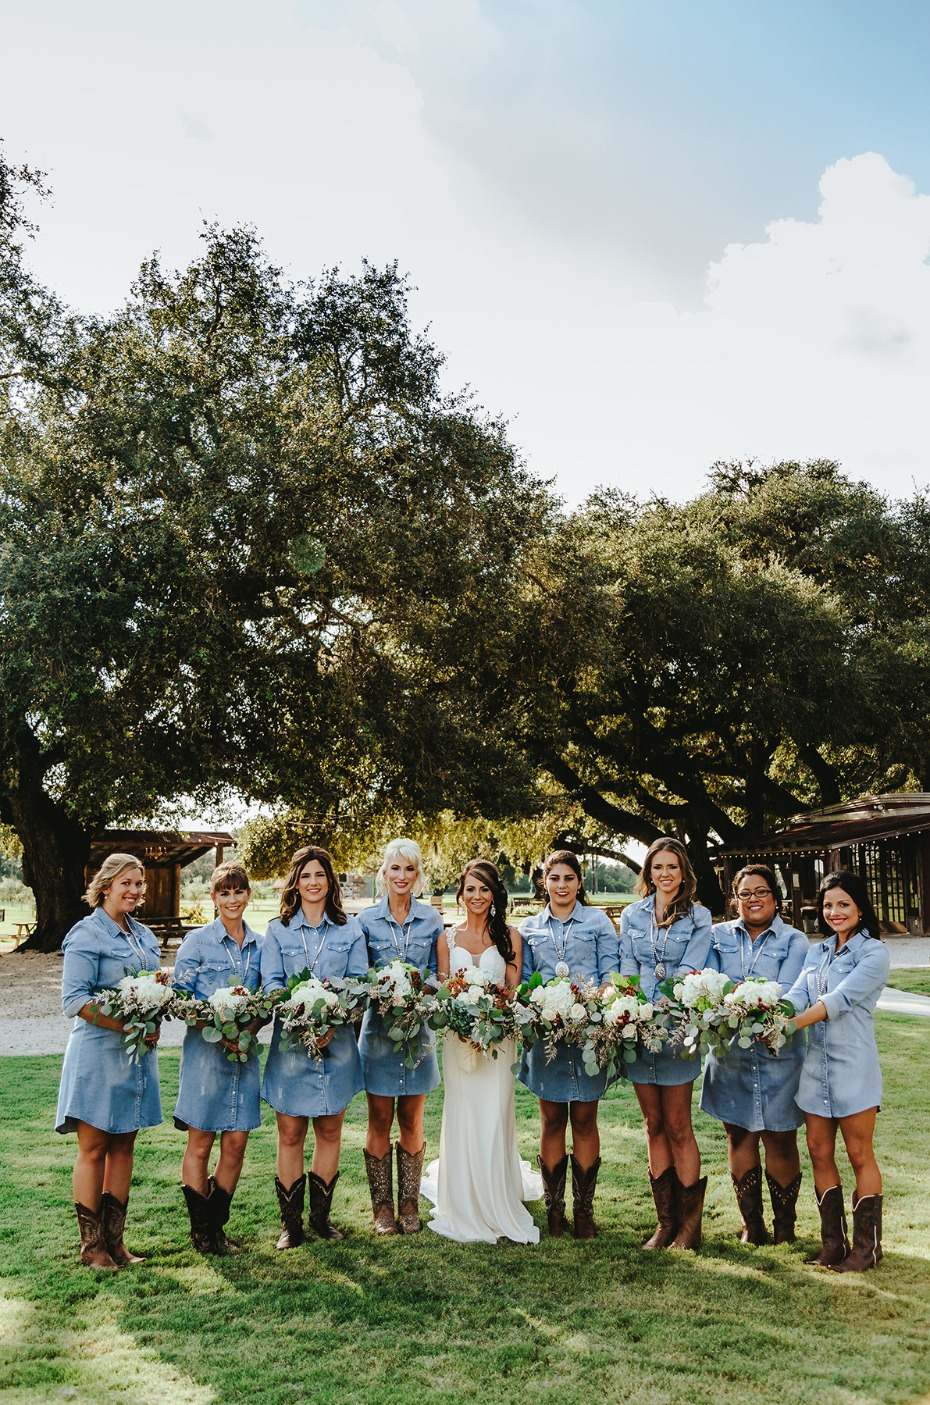 Cowgirl bridesmaid dresses in denim